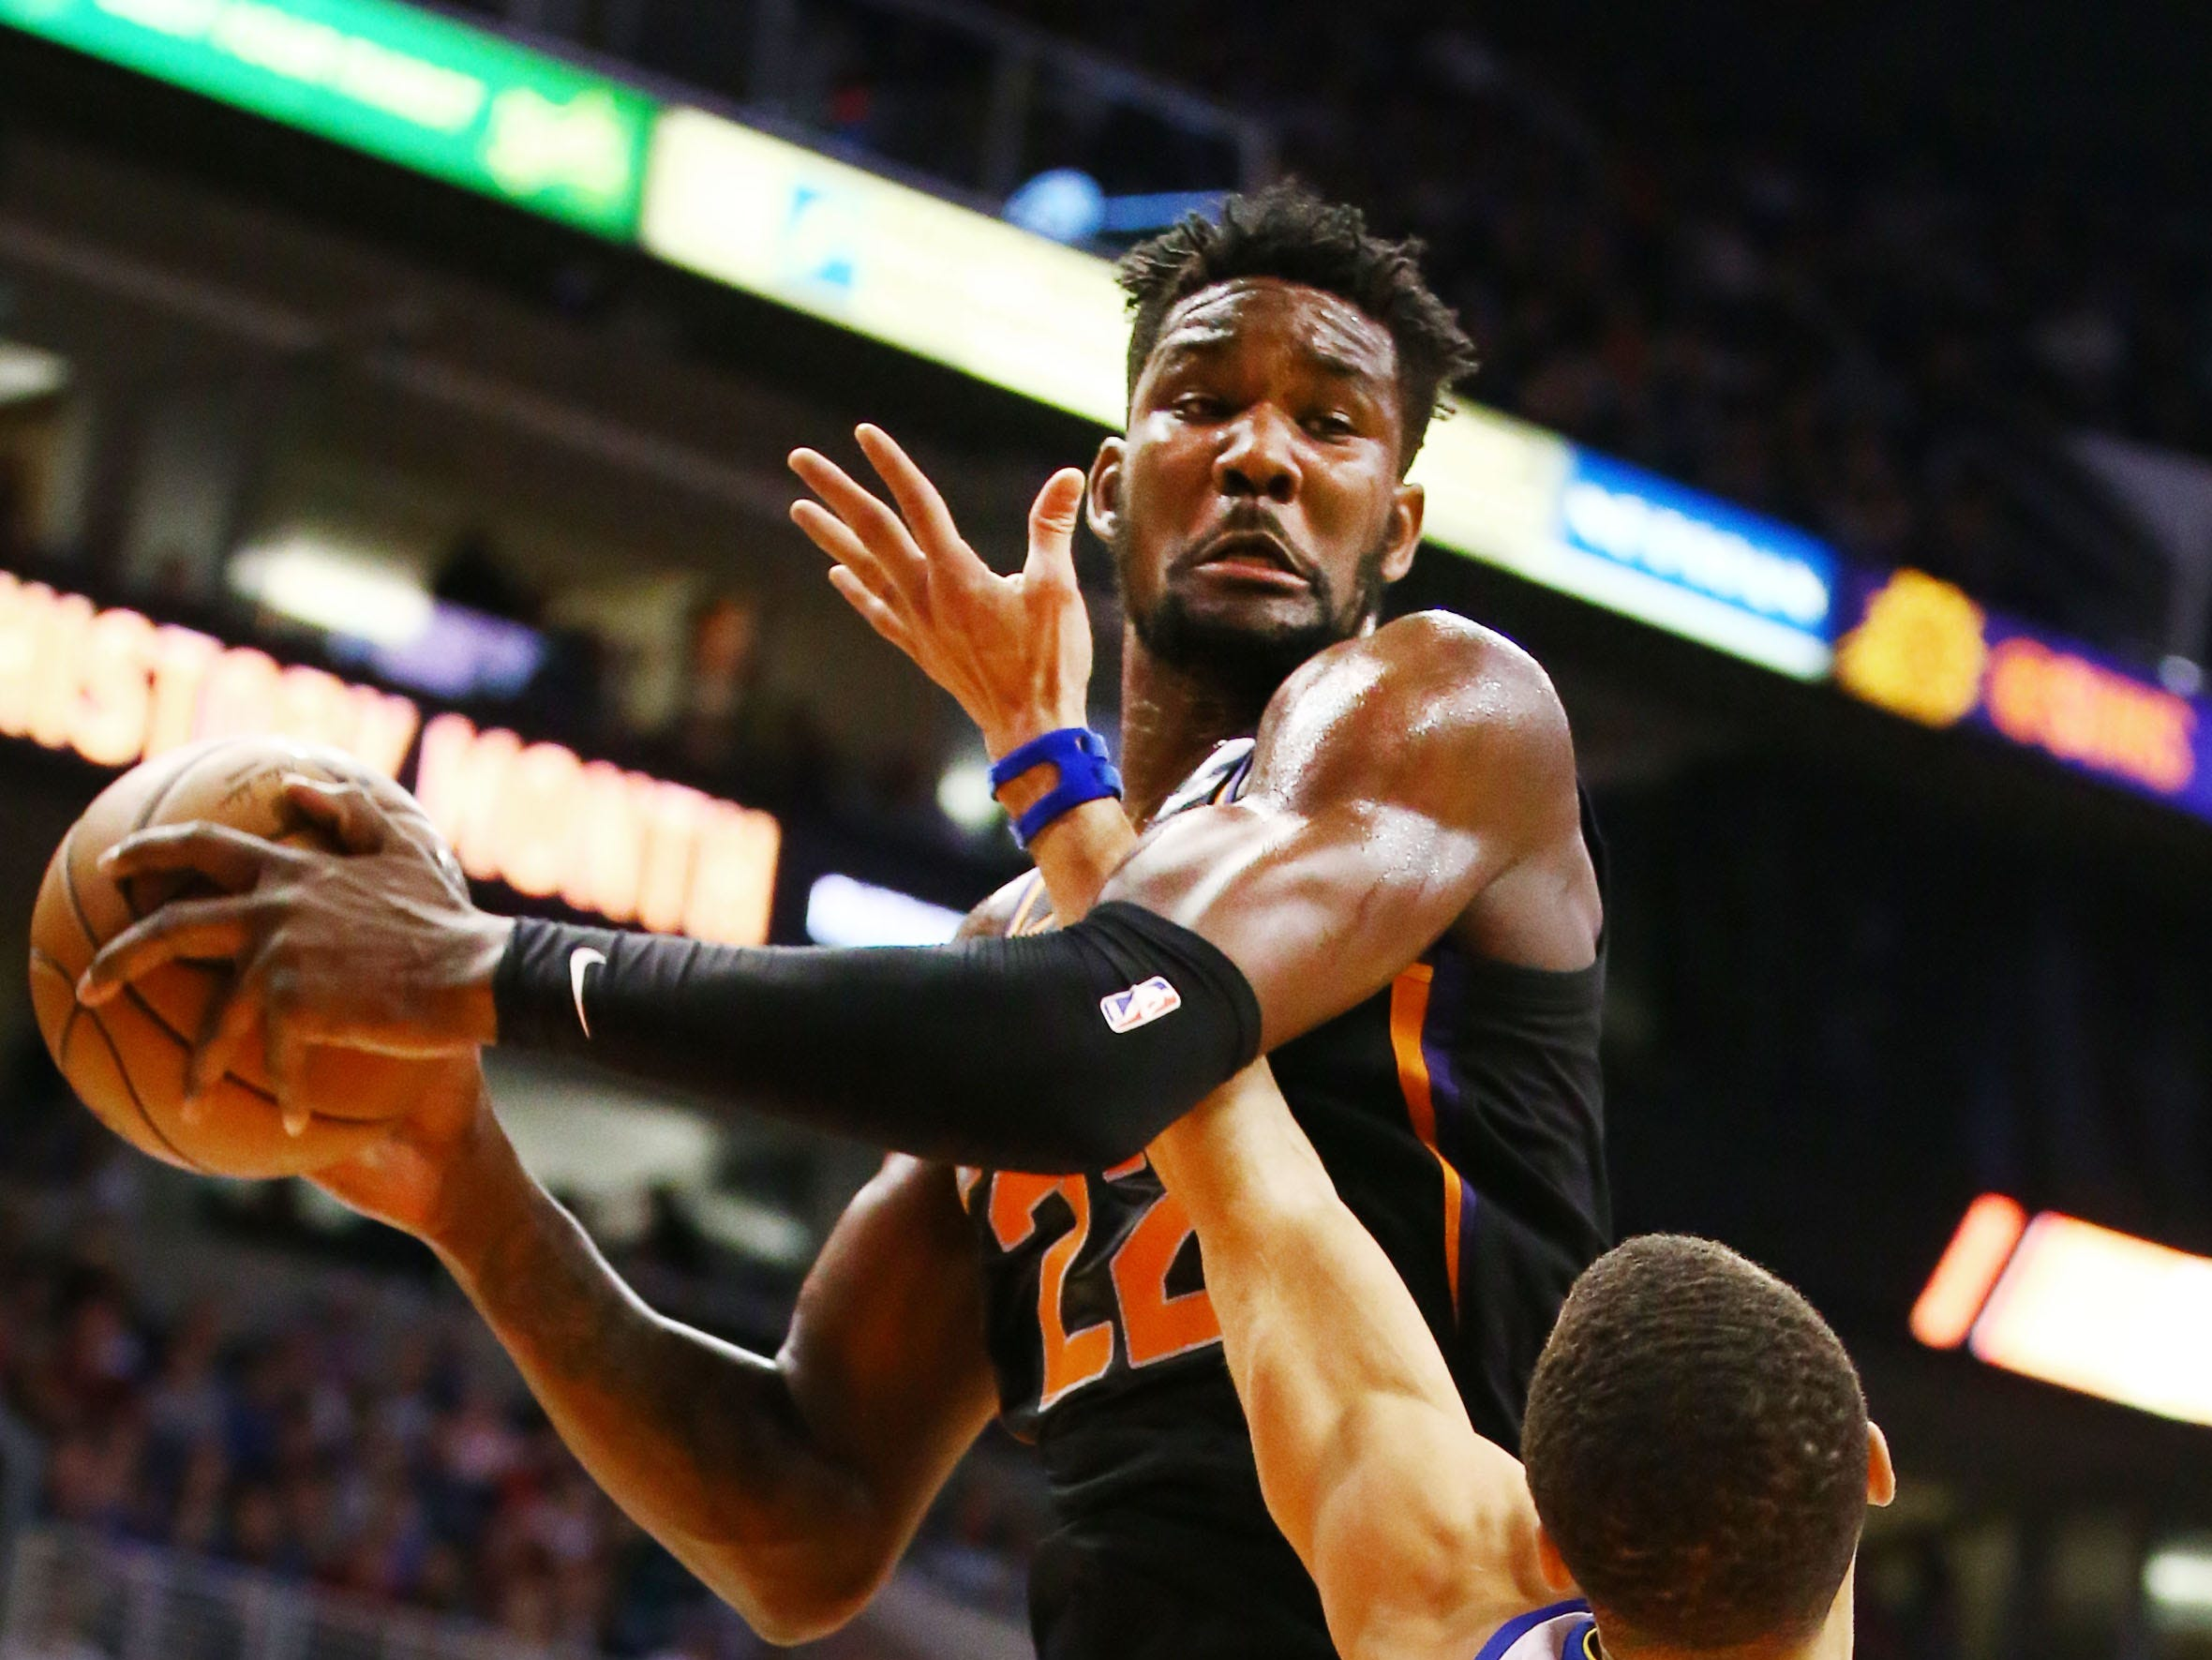 Phoenix Suns center Deandre Ayton is pressured by Golden State Warriors guard Stephen Curry in the first half on Feb. 8 at Talking Stick Resort Arena.